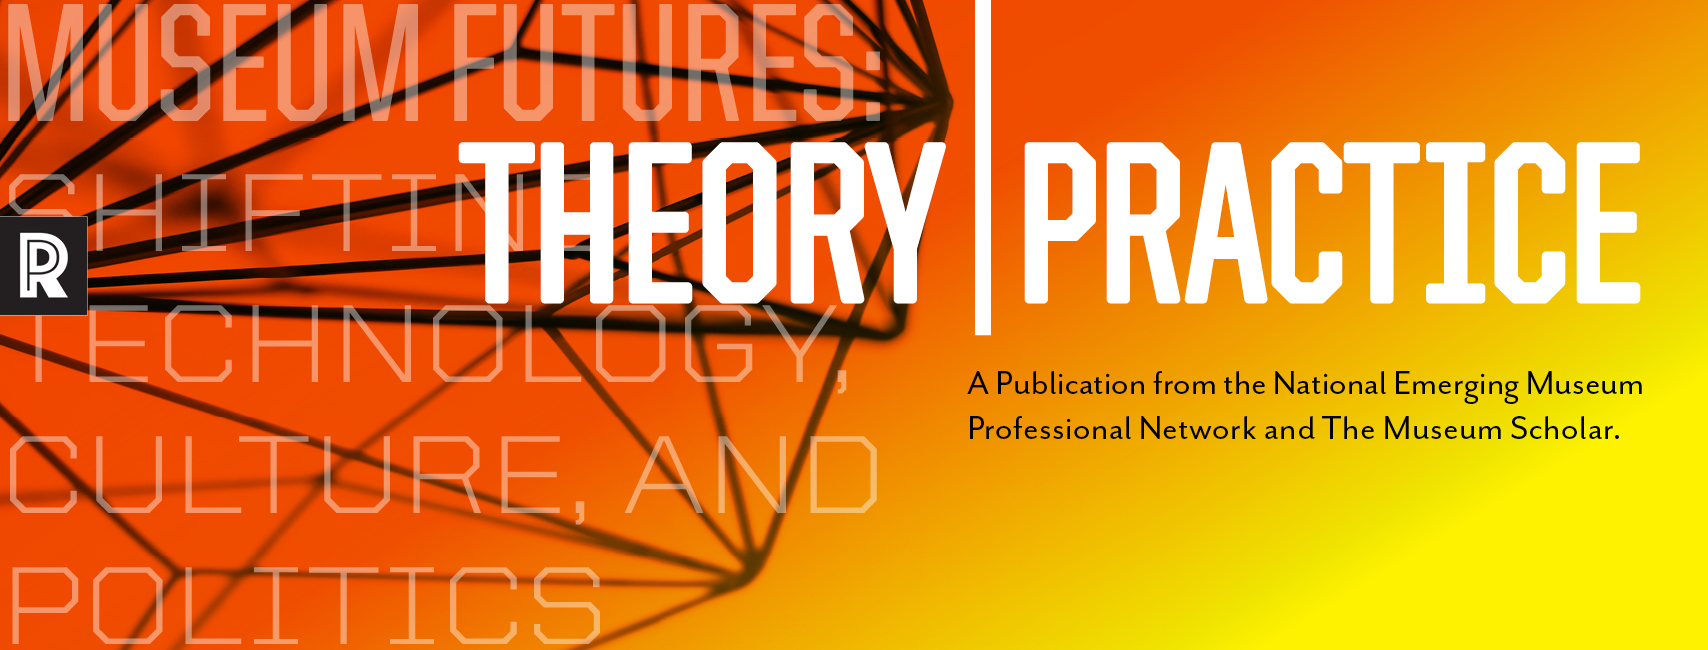 Emerging TheoryPractice_FB Cover.jpg